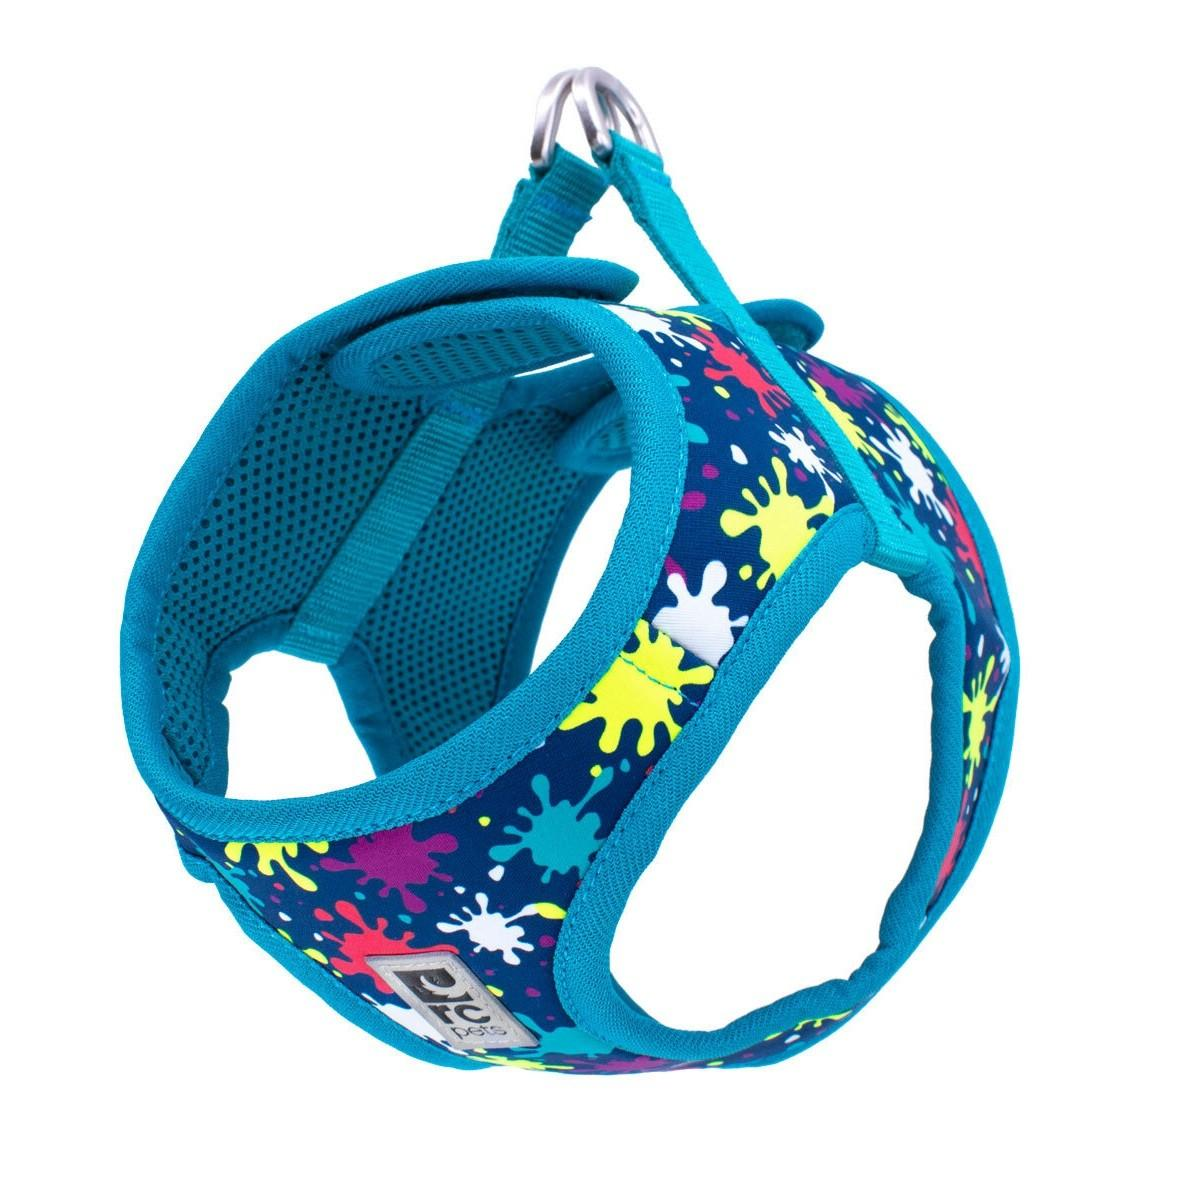 RC Pet Products Step in Cirque Dog Harness, Splatter, Large